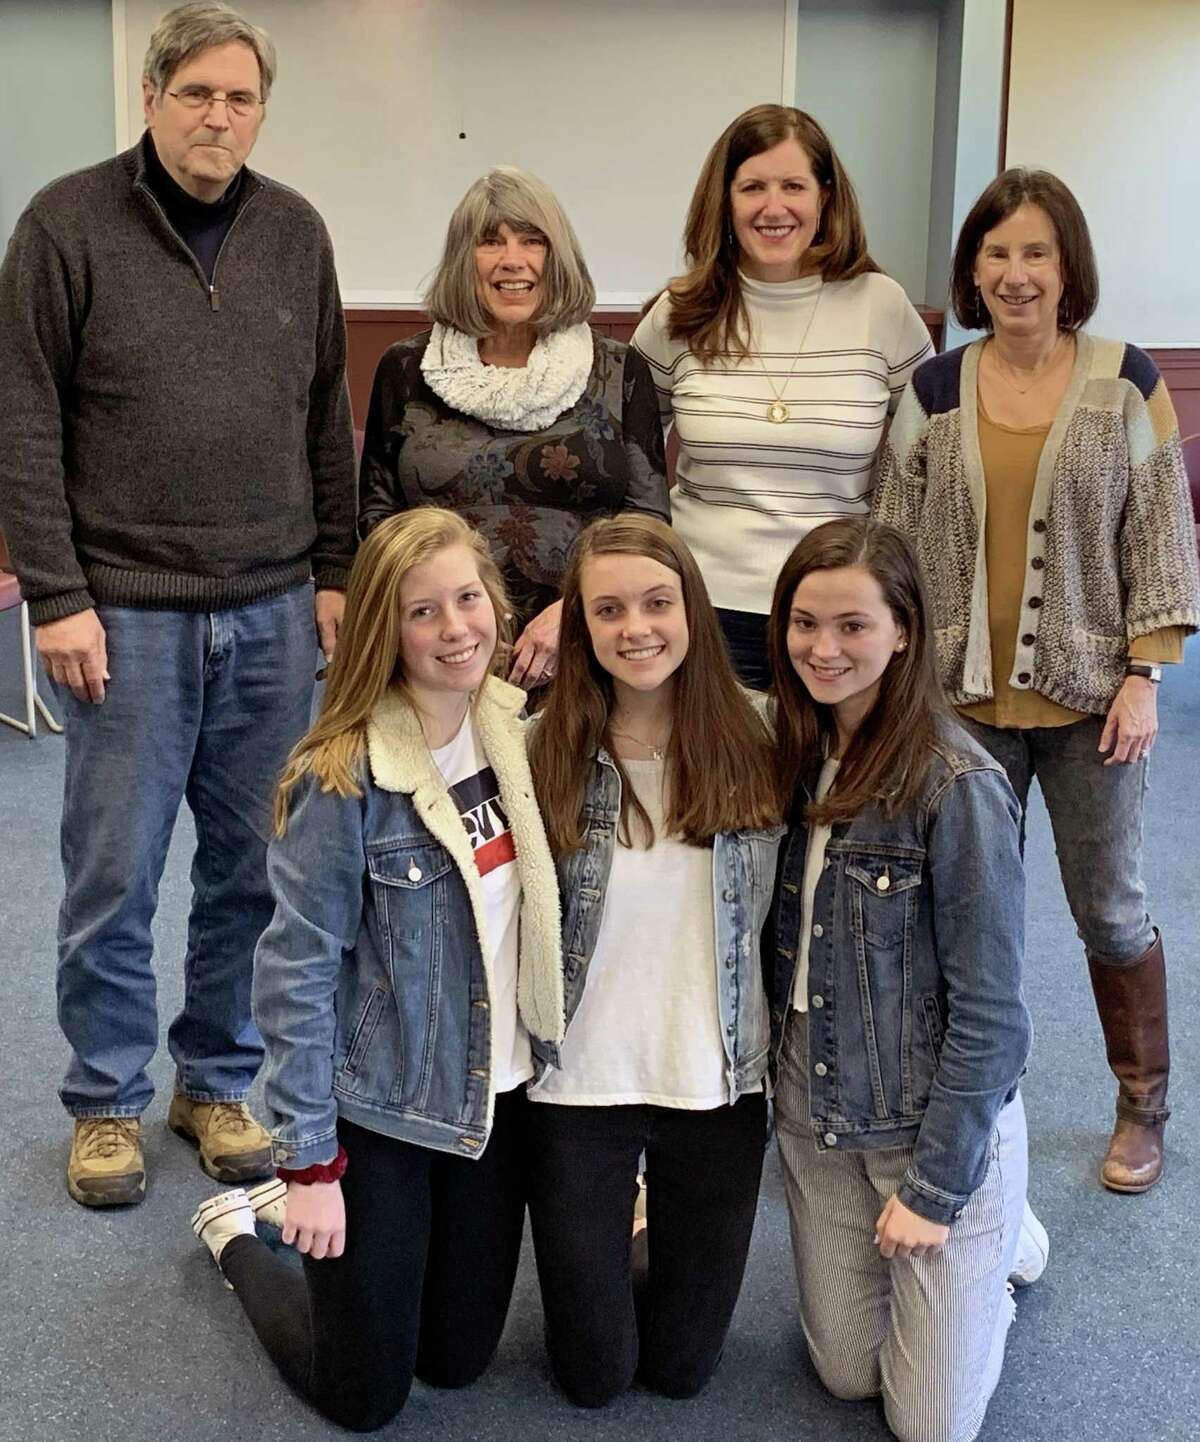 Standing are member of Families Helping Families, (left to right President Miner Vincent, Vice President/Secretary Lynn Hidek and Board Members Eileen Smith and Nancy Stone, along with Morgan School students, kneeling (left to right), Emma Lindsay, Abby Eydman and Clara Franzoni.